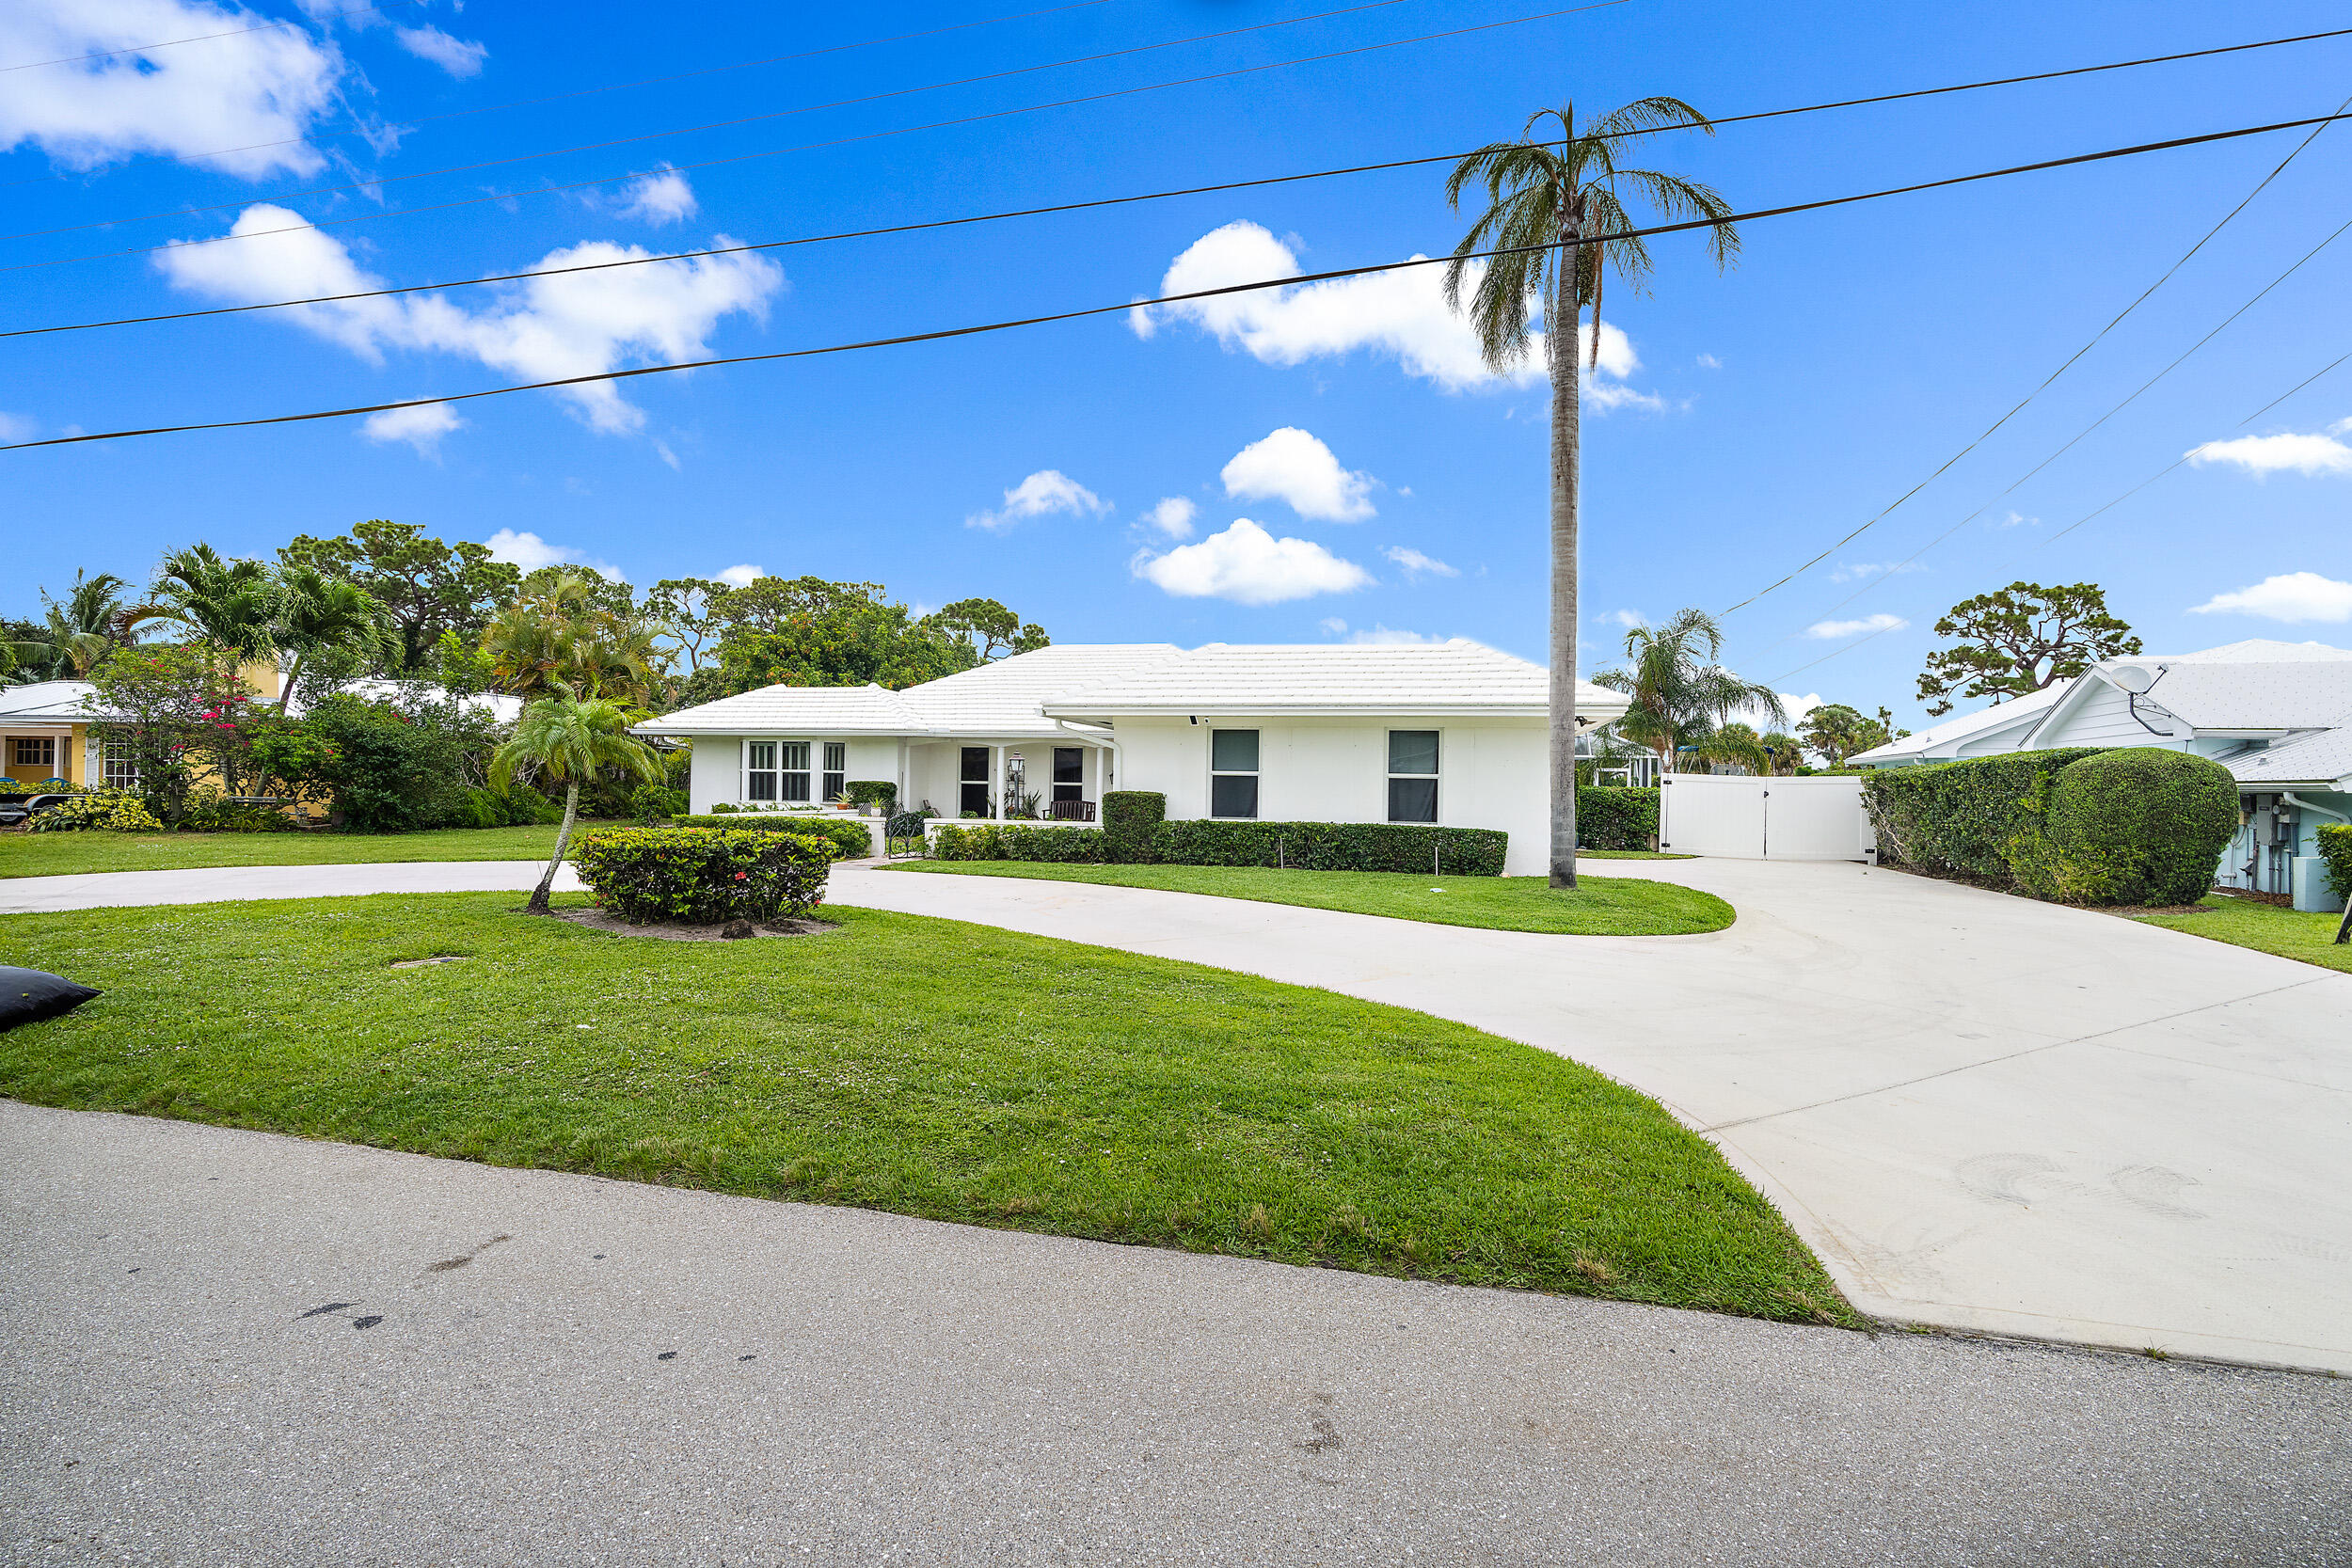 Location, Location, Location!!!Beautiful single family home in the heart of Tequesta.  Located across from boat ramp and on the golf course just minutes away from shopping, restaurants and the beach. Step inside this wonderful home offering a split bedroom floor plan, 3 bedrooms, 3.1 bathrooms, 2 car garage and a great screened in pool.Brand NEW 2020 roof, AC 2014 and water heater 2021.  All Newer kitchen appliances, wood floors and generously sized bedrooms. Dont miss out seeing this GEM!